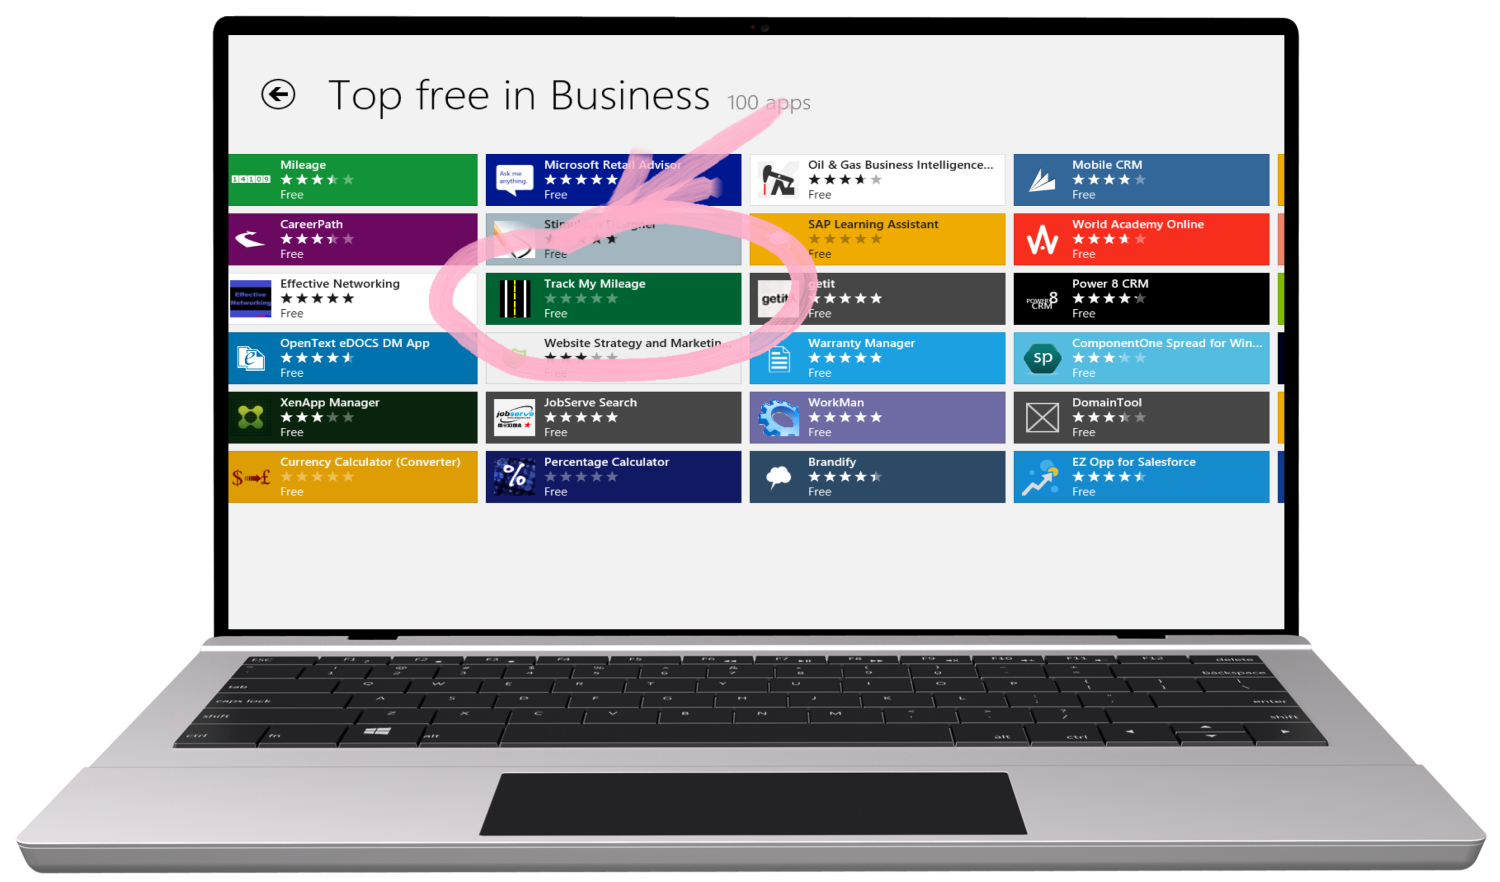 Top Free In Business Section of Windows Store